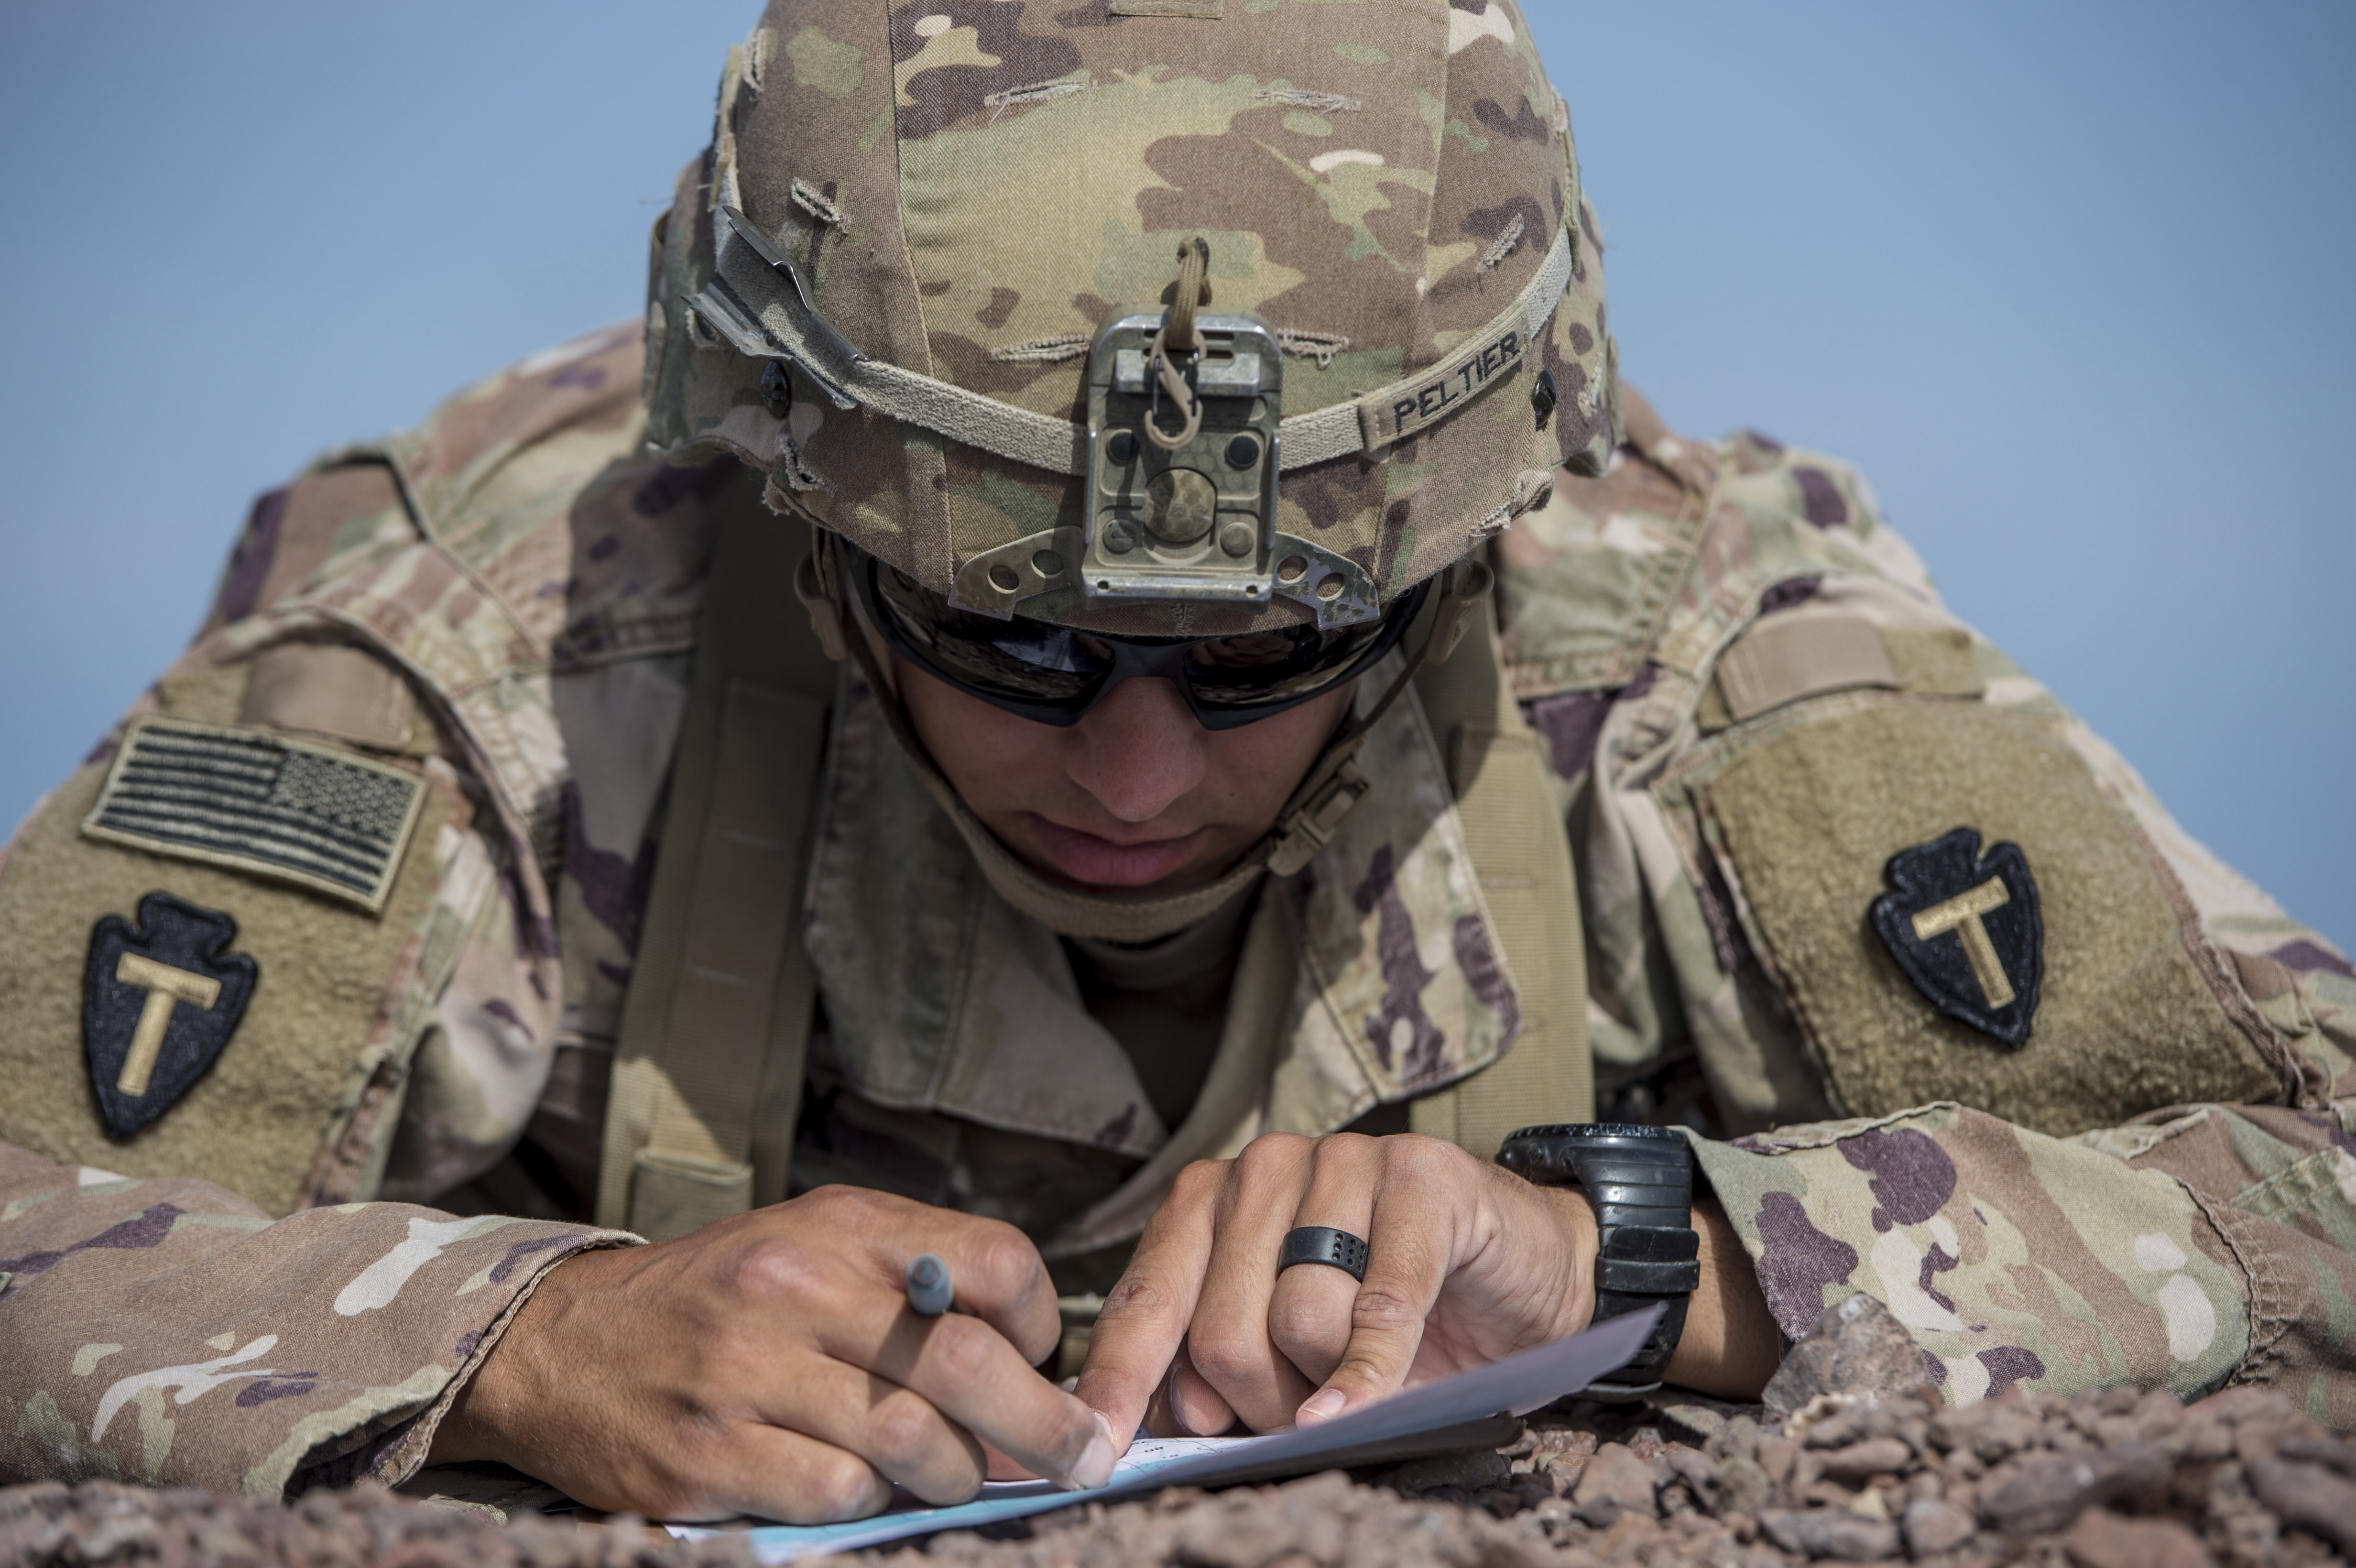 A U.S. Army Soldier assigned to Combined Joint Task Force - Horn of Africa plots a grid point during land navigation training in preparation for an Expert Infantryman Badge evaluation at Arta Range, Djibouti, Jan. 25, 2018. After two weeks of training and five days of testing, 50 Soldiers completed the process to earn the coveted special skills badge that requires Soldiers to perform an Army Physical Fitness Test, day and night land navigation, a 12-mile forced march, and 30 individual tasks covering weapons, medical, and security patrol skills. (U.S. Air Force photo by Staff Sgt. Timothy Moore)